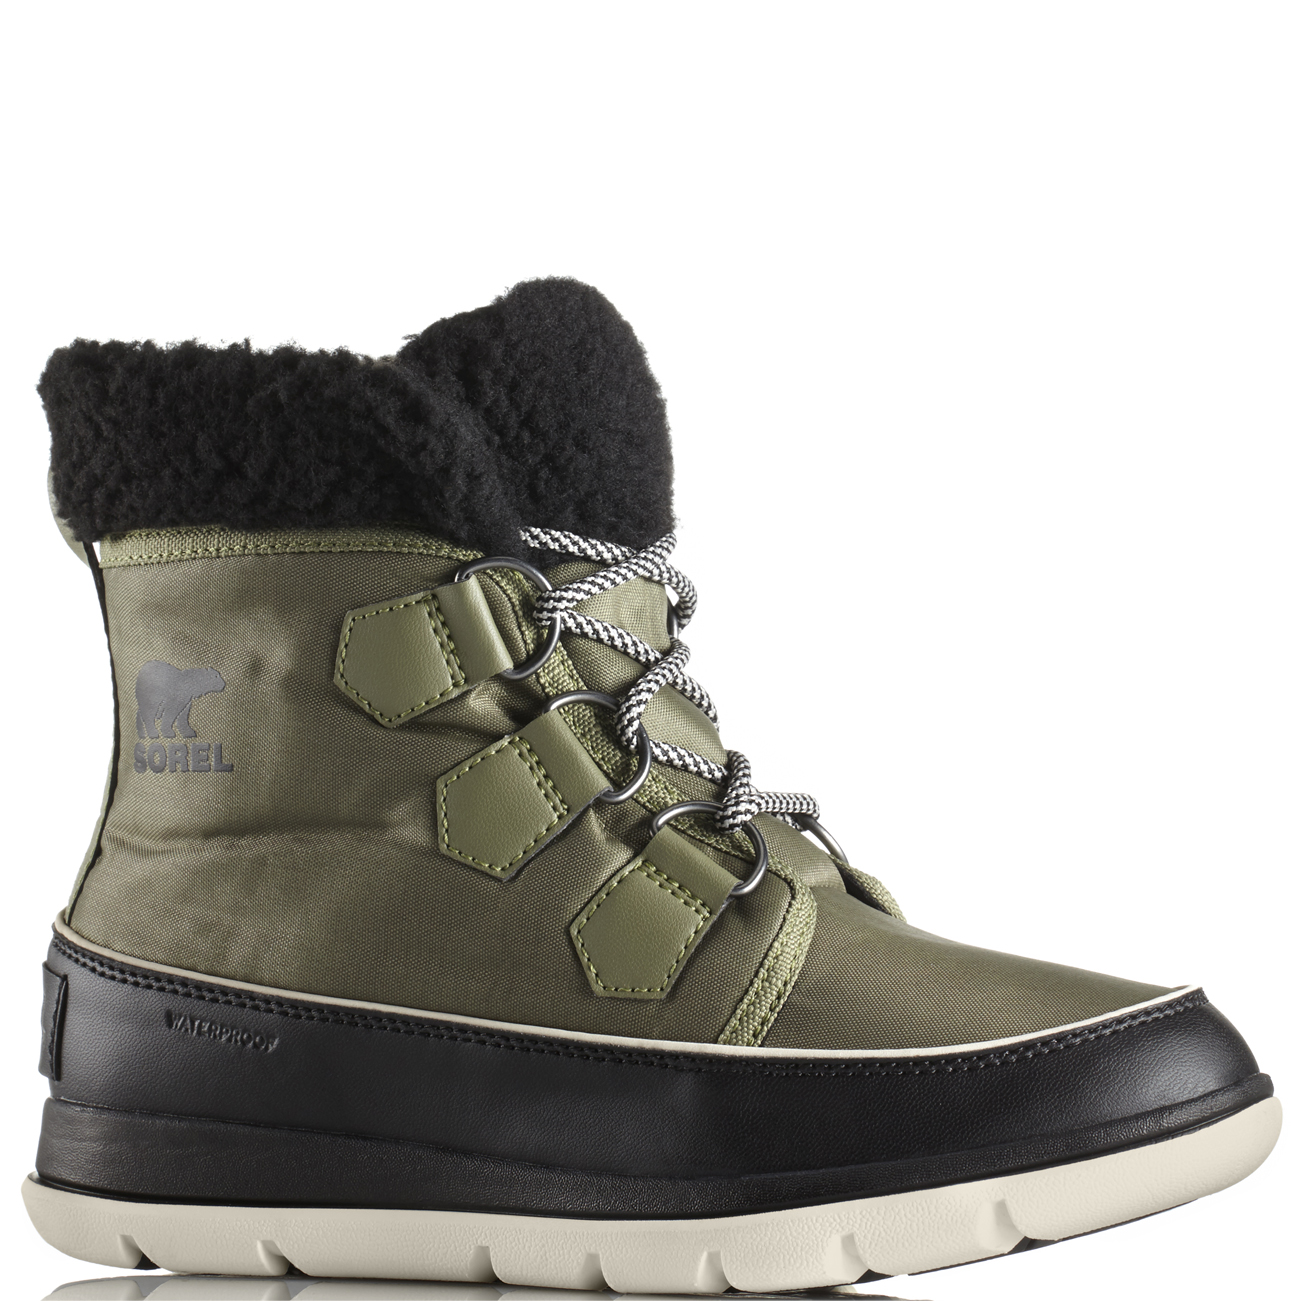 5776d6a6195 Details about Womens Sorel Explorer Carnival Waterproof Hiking Nylon Ankle  Winter Boot US 5-11